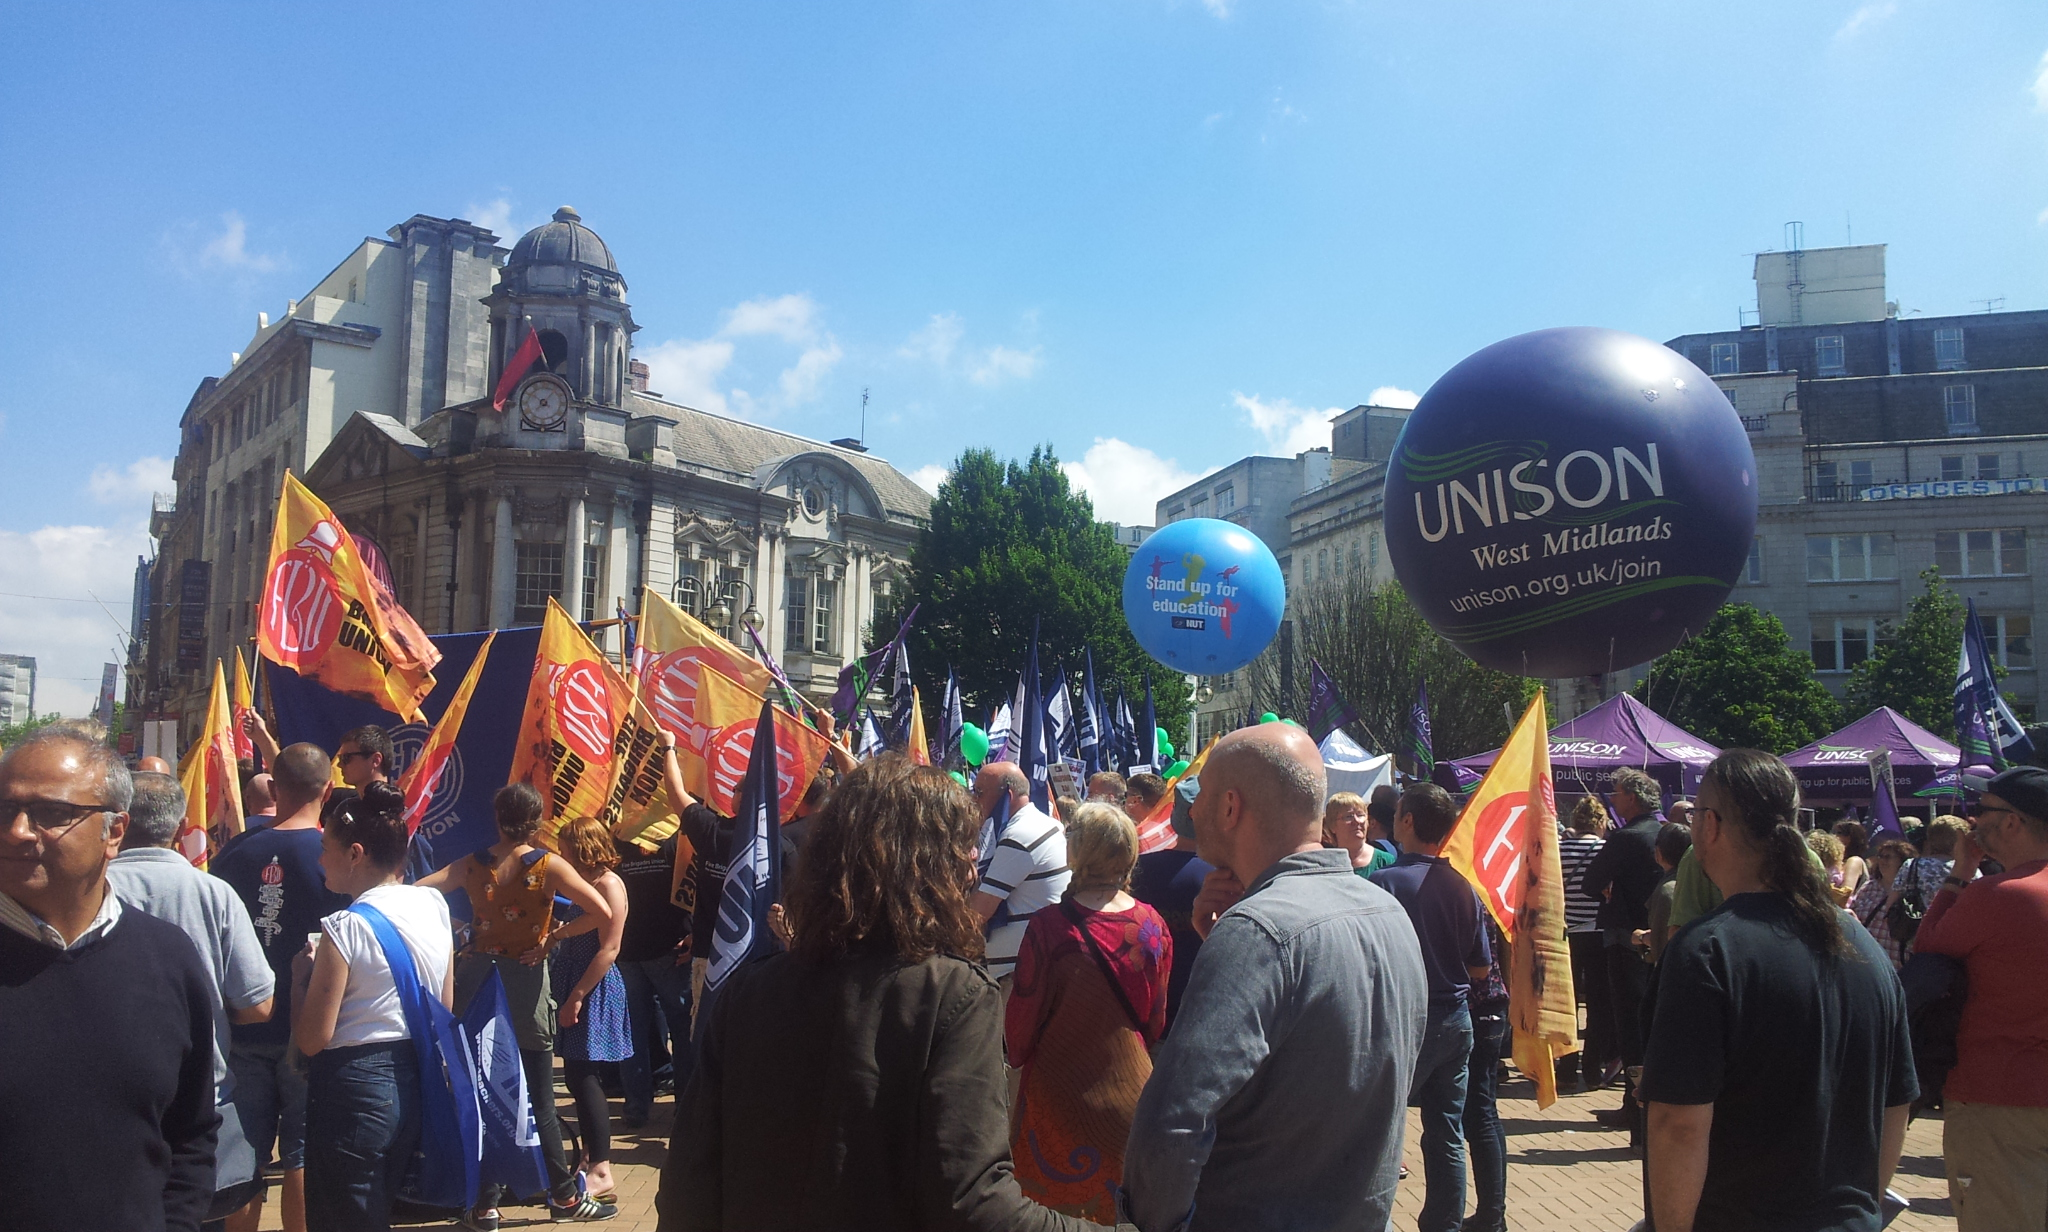 Birmingham strike union rally